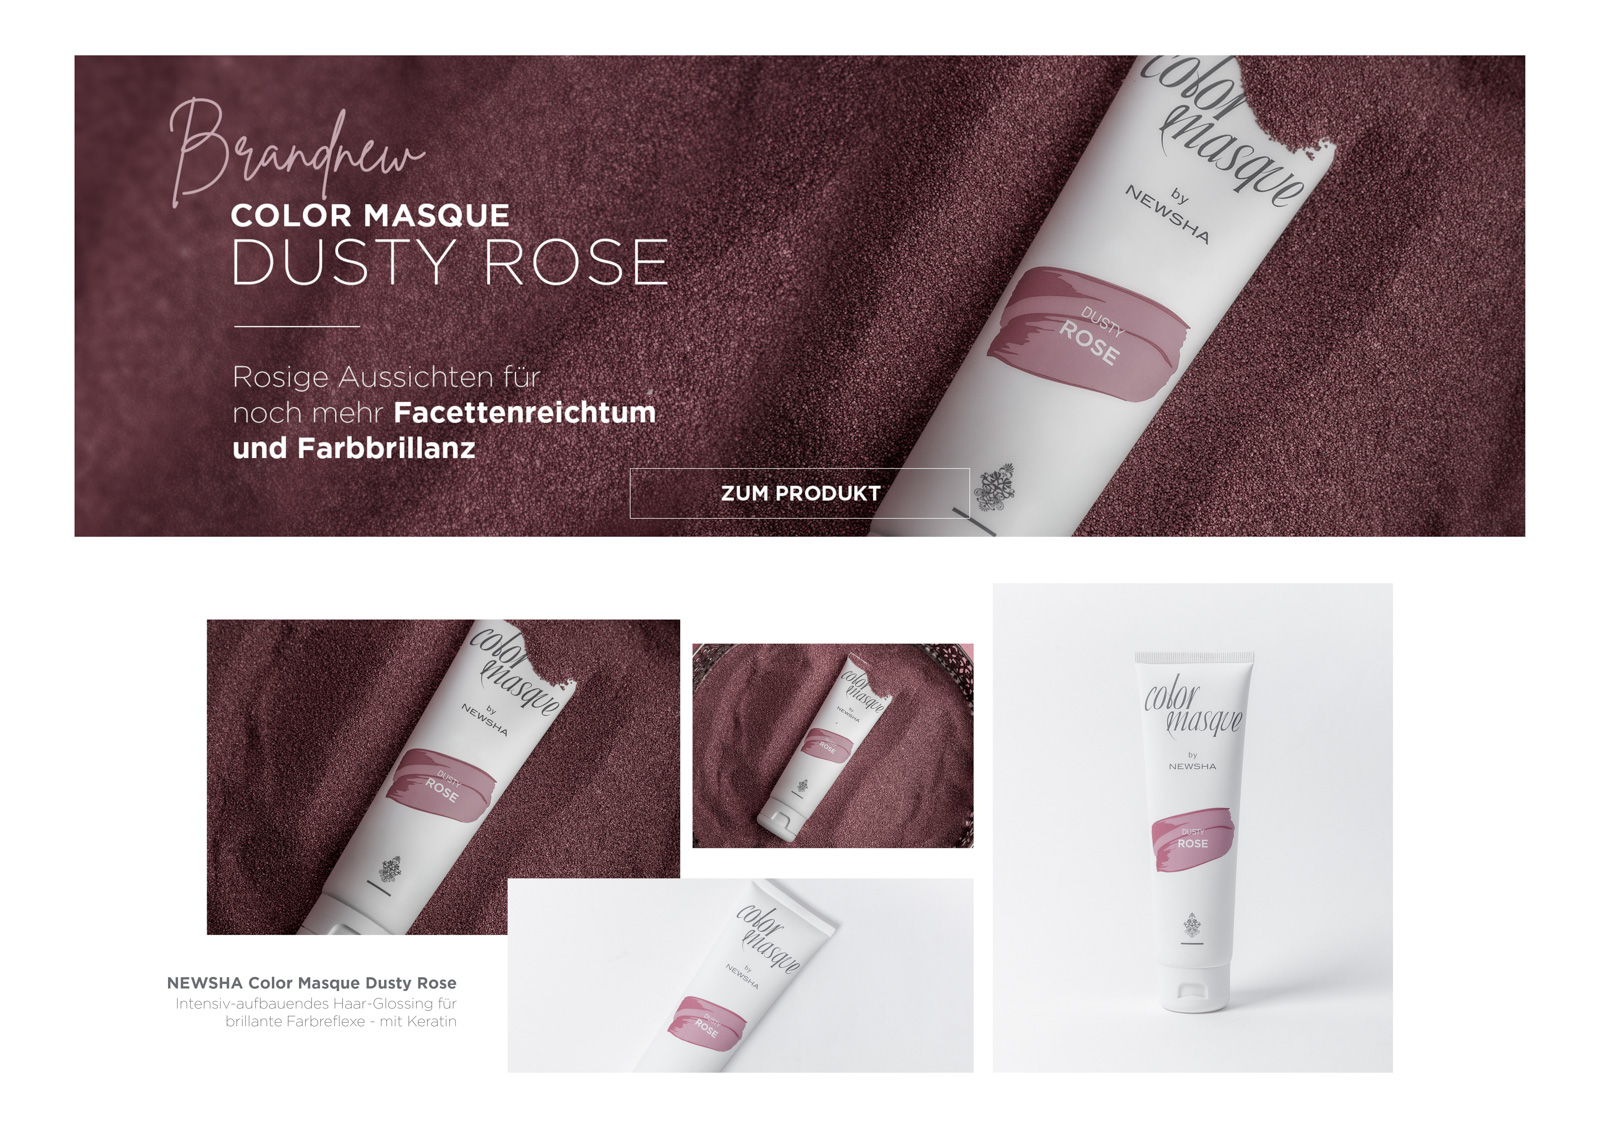 NEWSHA | COLOR MASQUE DUSTY ROSE | PRODUCT SHOT